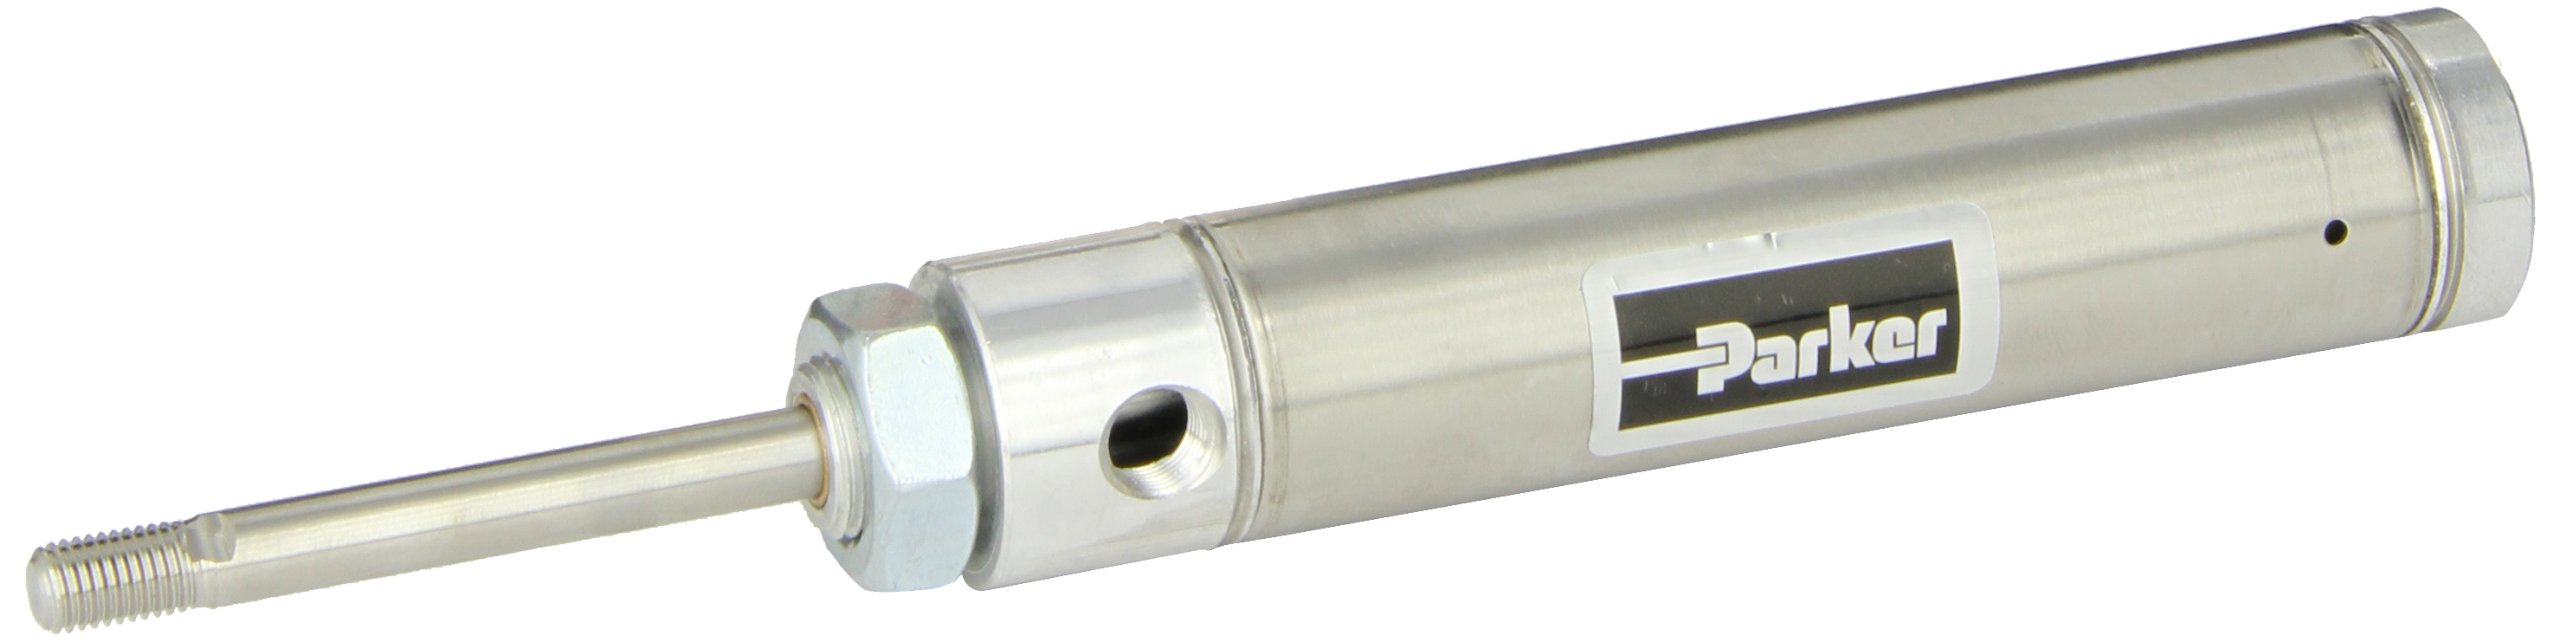 Parker 1.06RSR02.0 Stainless Steel Air Cylinder, Round Body, Single Acting, Spring Extend, Nose Mount, Non-cushioned, 1-1/16 inches Bore, 2 inches Stroke, 5/16 inches Rod OD, 1/8'' NPT Port